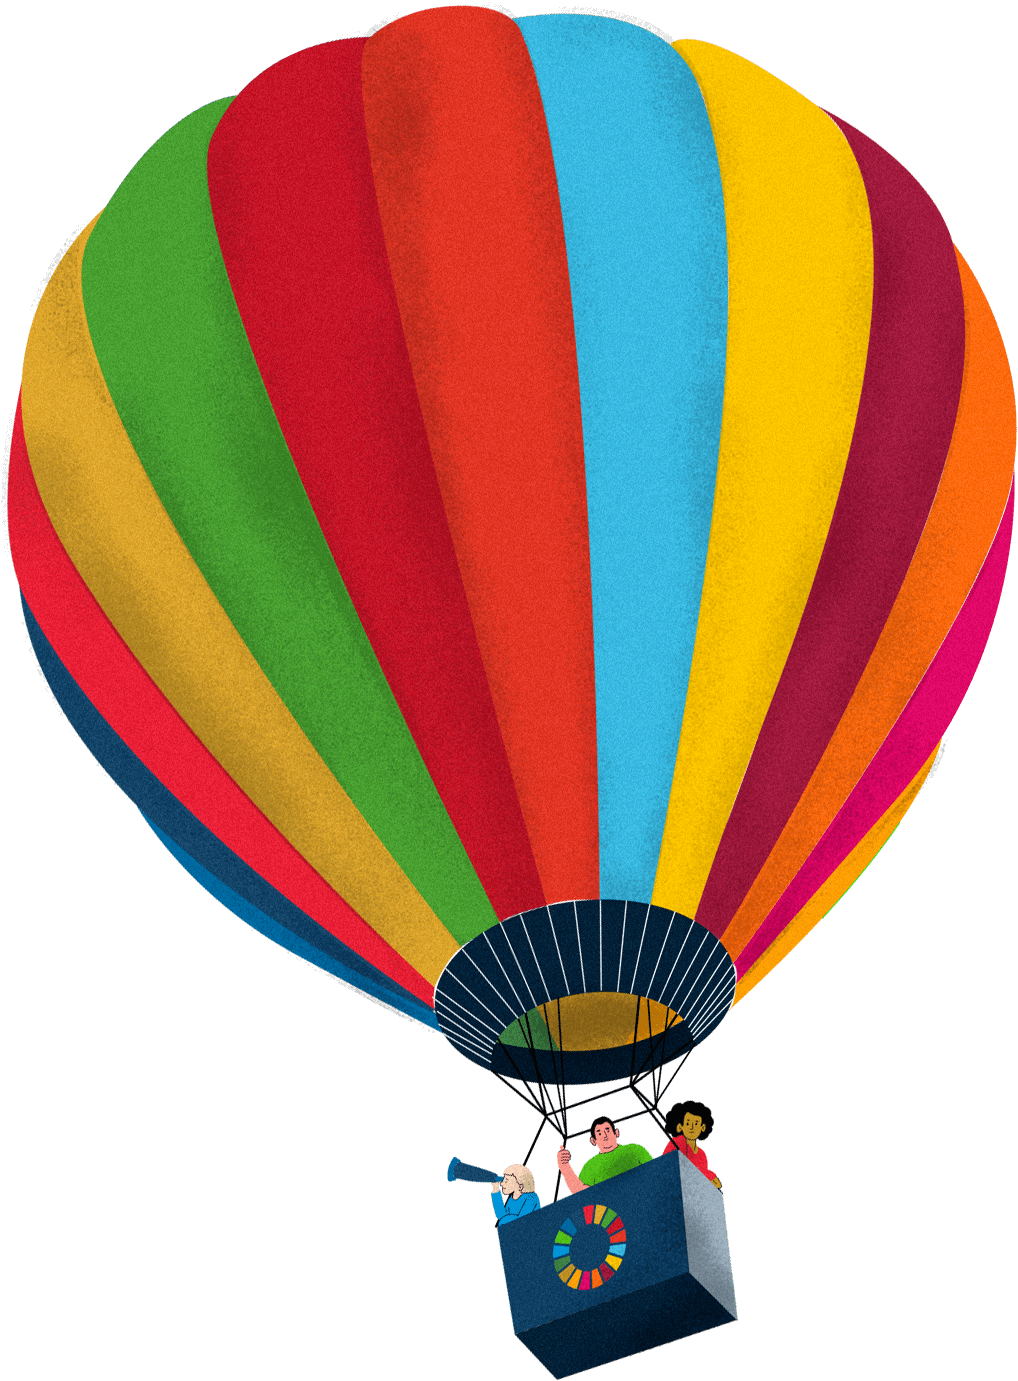 Main balloon